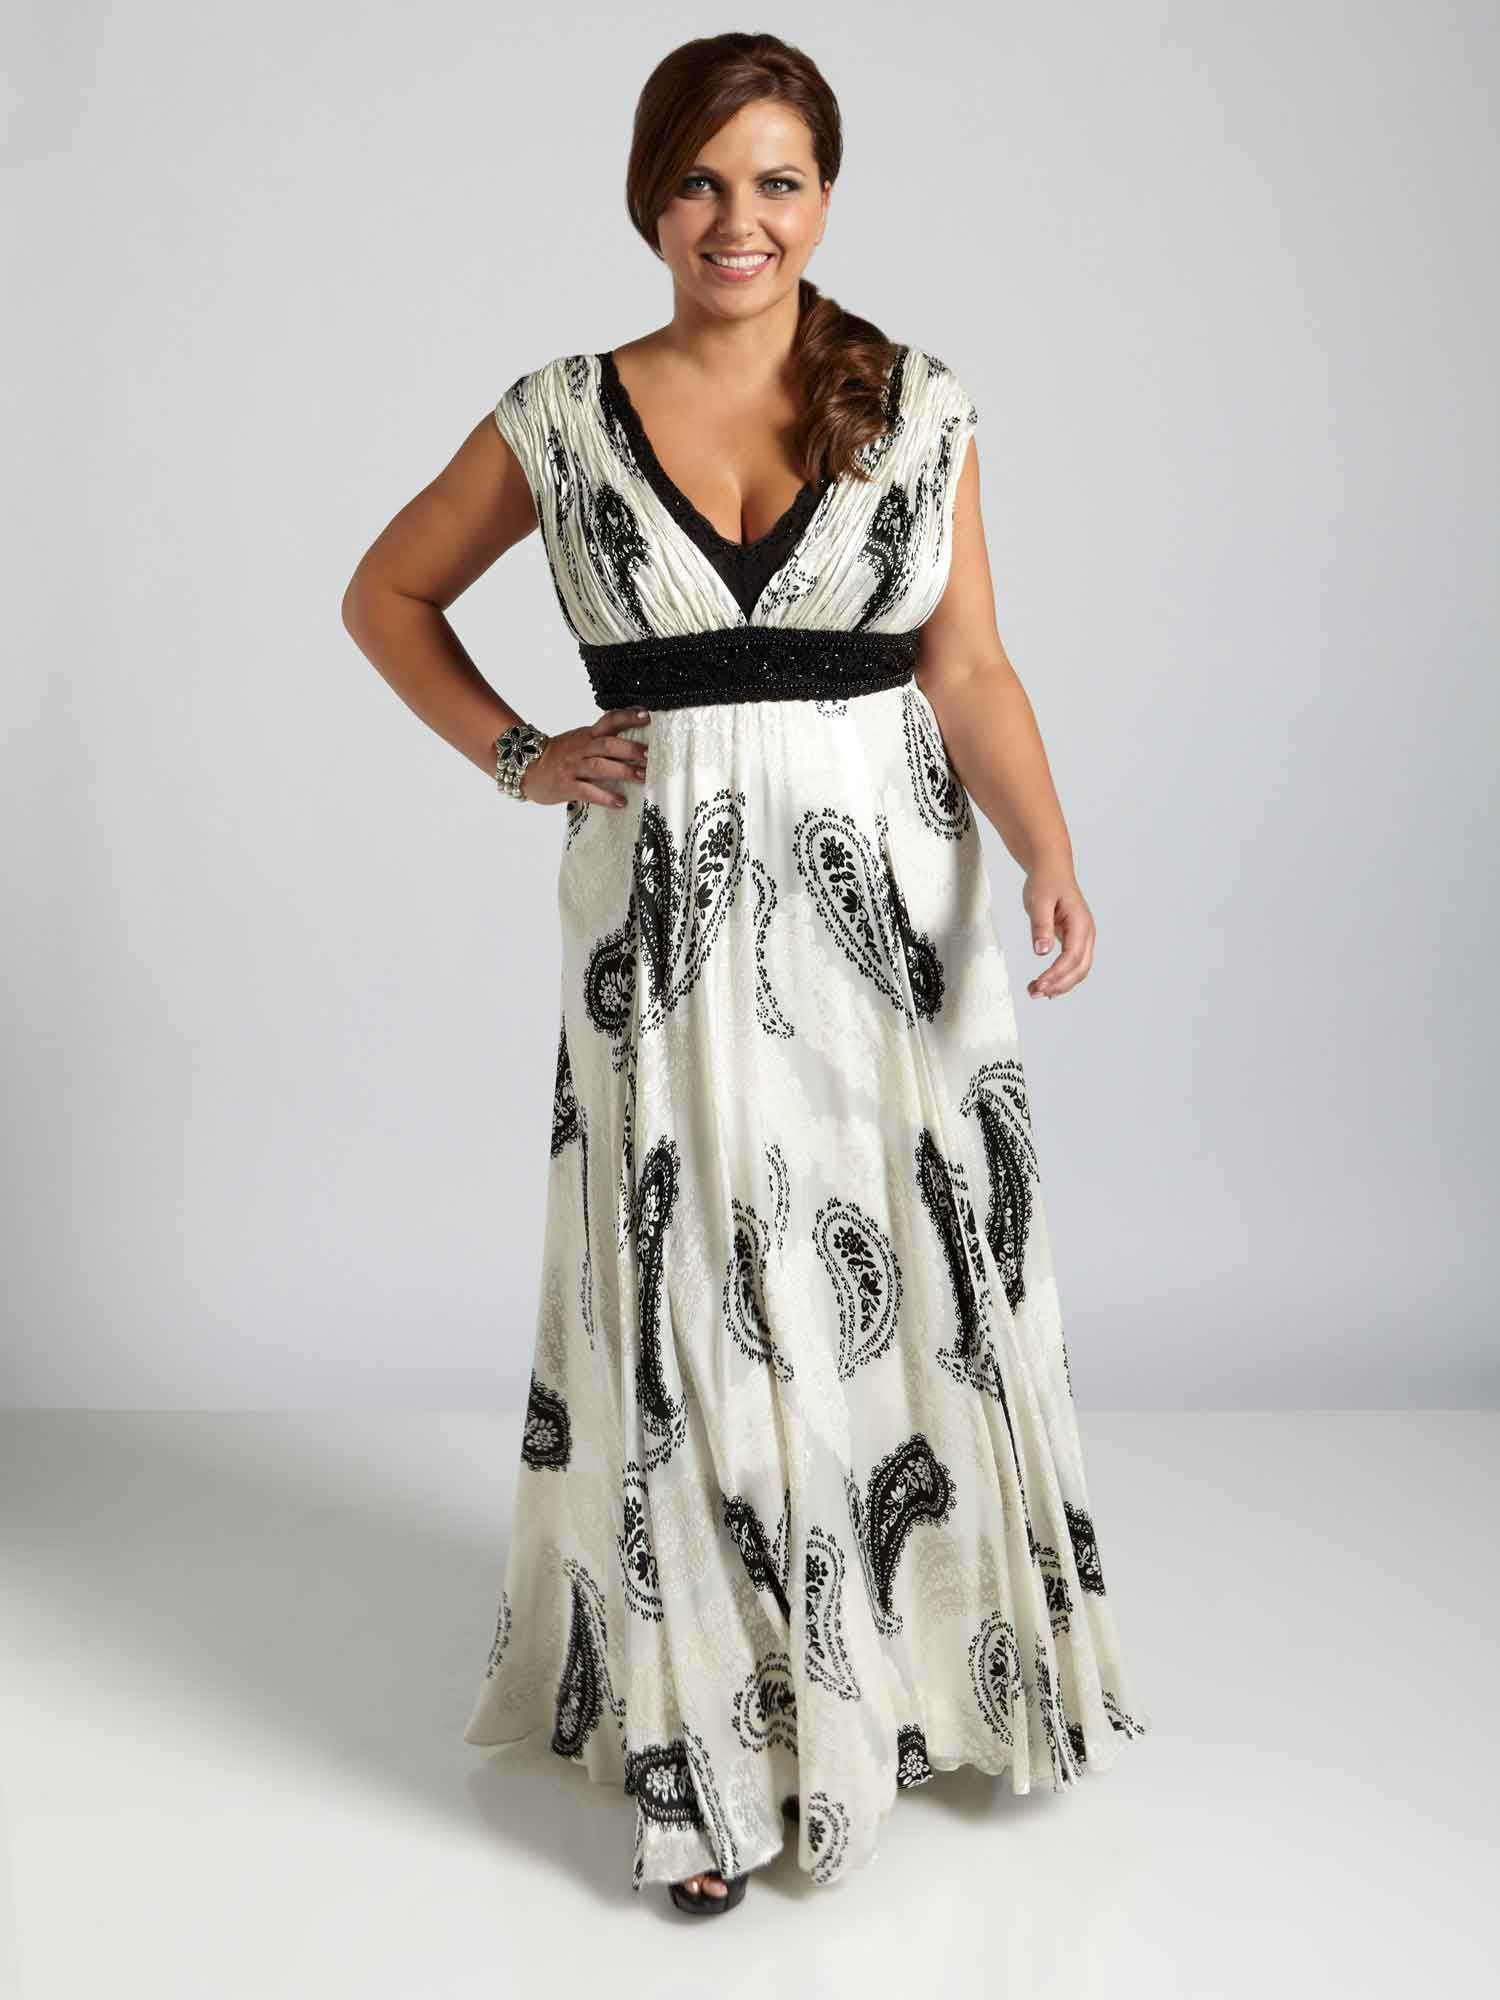 a345bbfd4ac Awesome Plus Size Cocktail Dresses   Plus Size Evening Dresses Wonderful